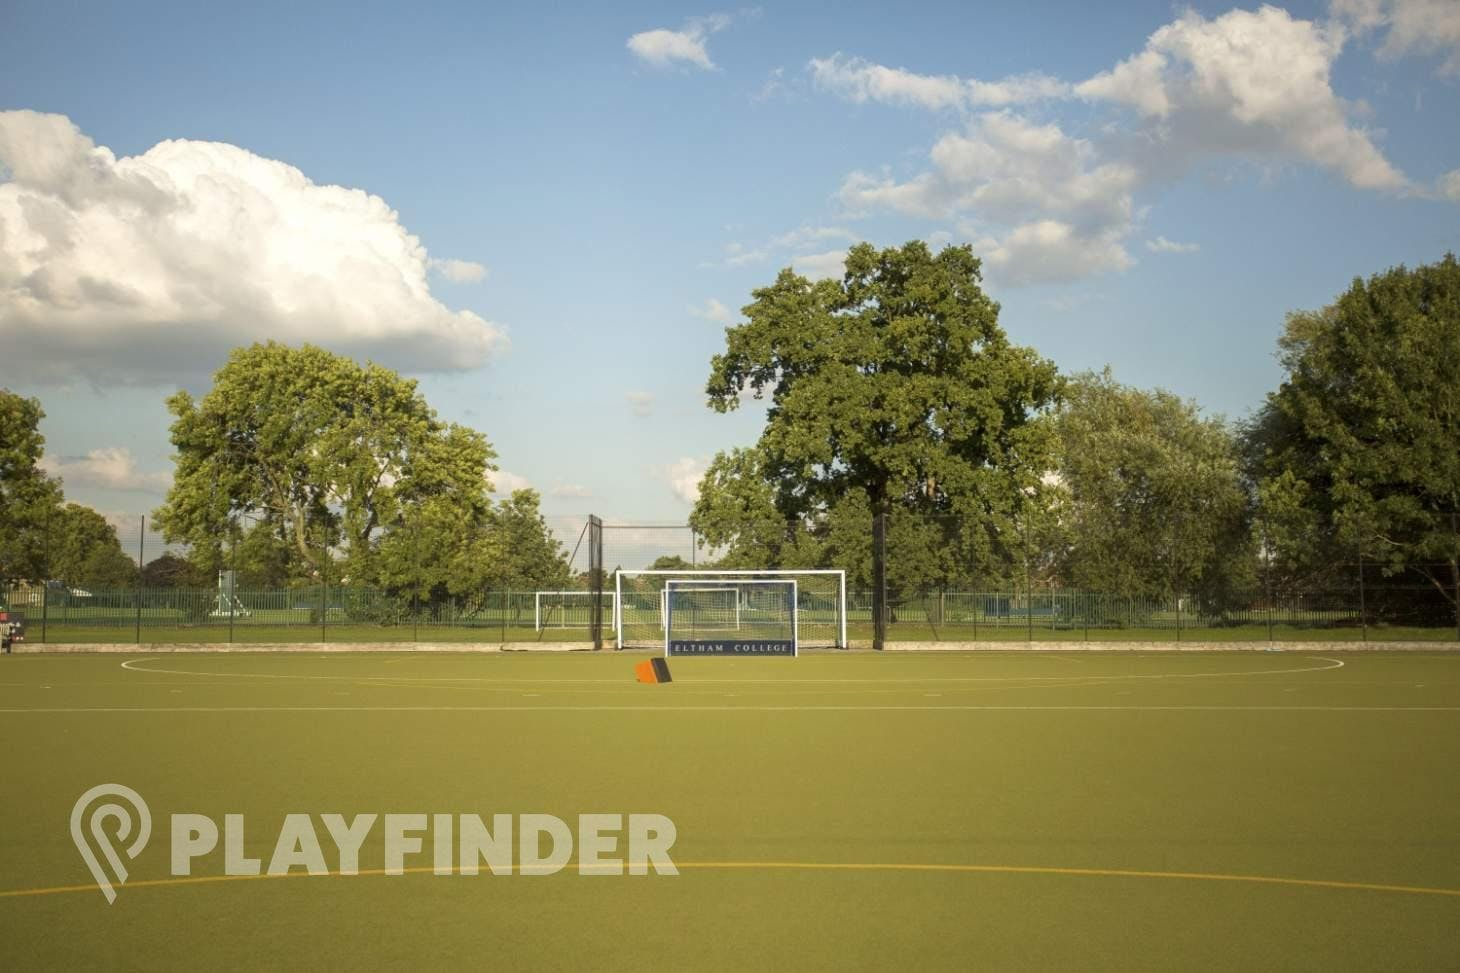 Eric Liddell Sports Centre - Outdoor 11 a side | Astroturf football pitch